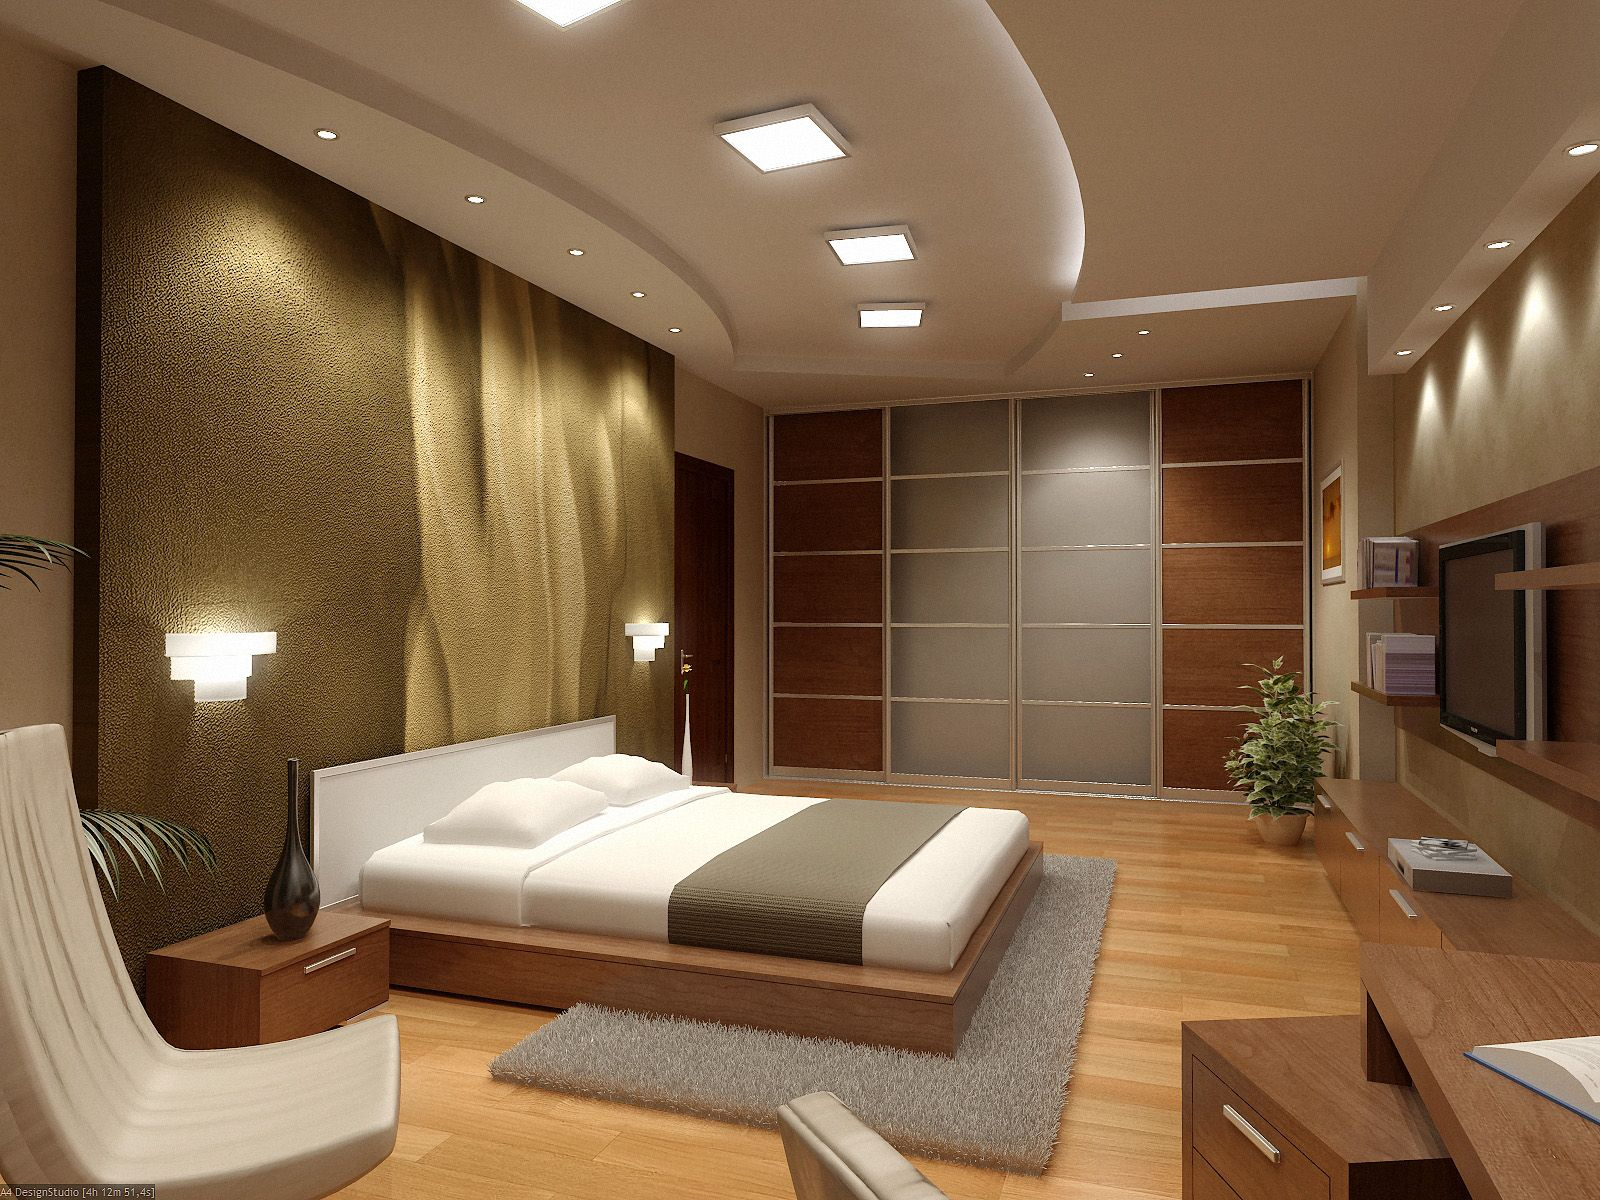 New home designs latest modern homes luxury interior for Interior home design bedroom ideas